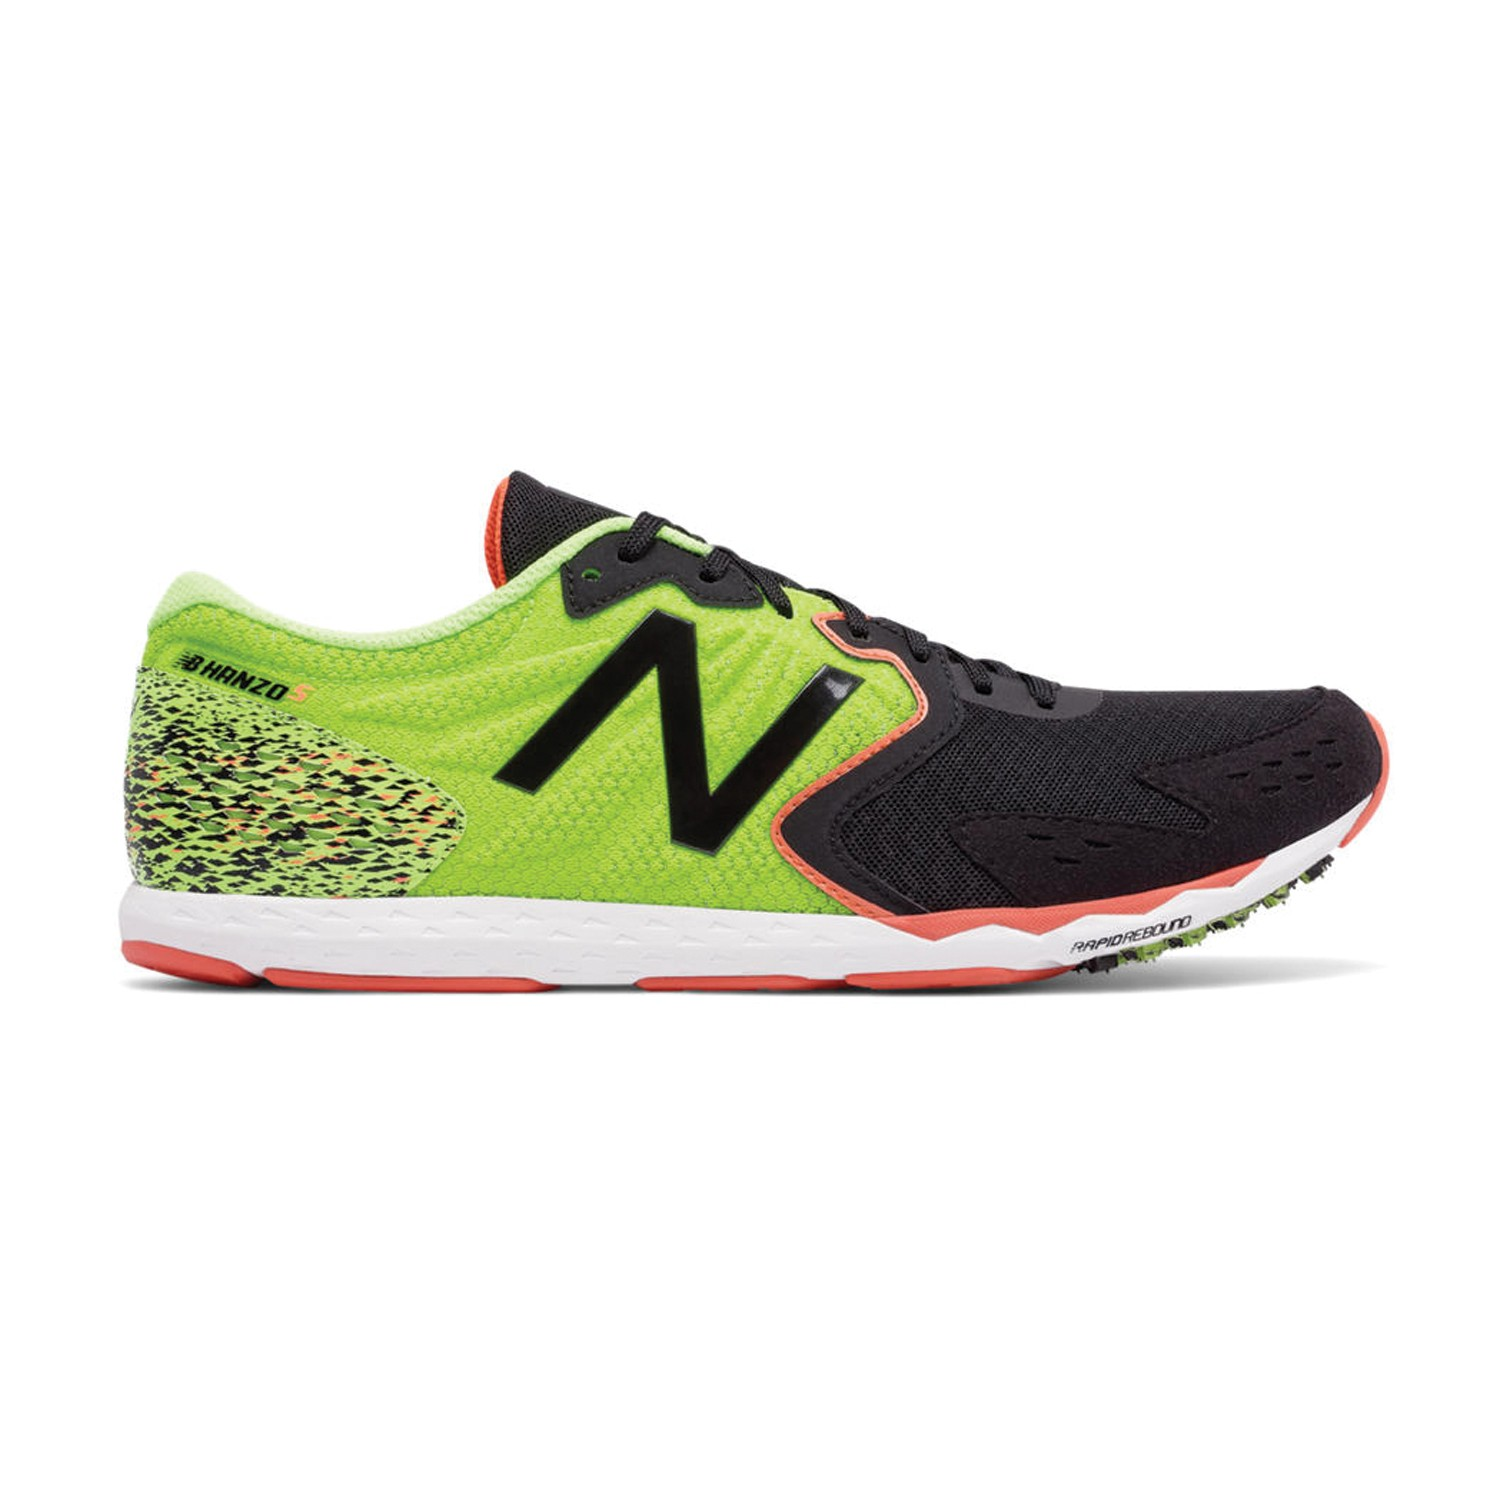 New Balance Men's Hanzo S Racing Shoe